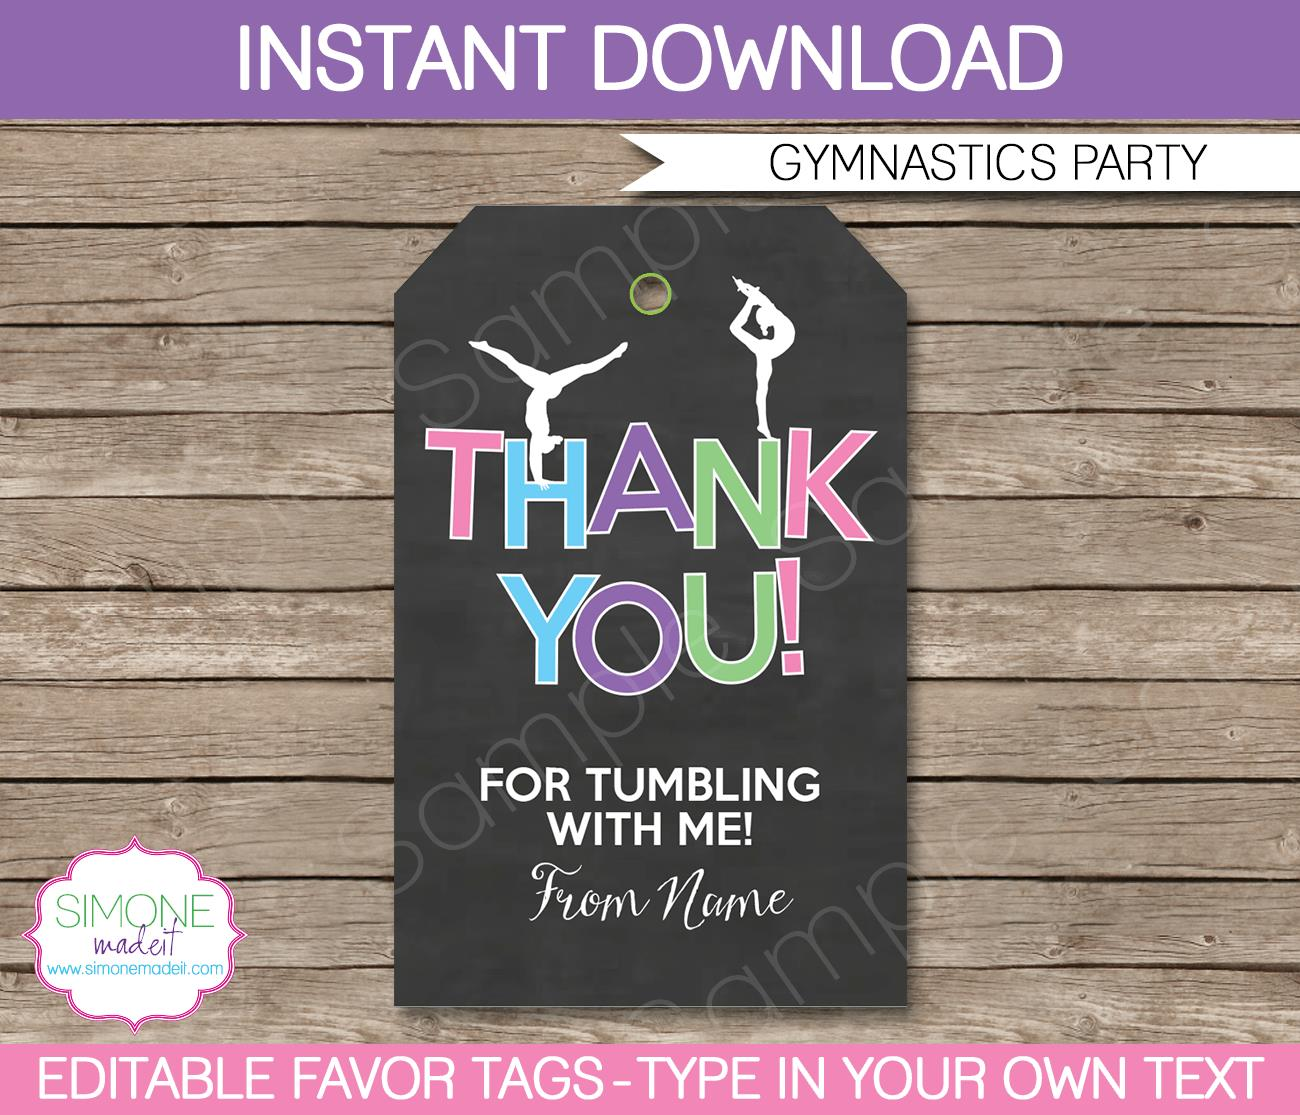 birthday favor tags template free ; Gymnastics-Party-Favor-Tags